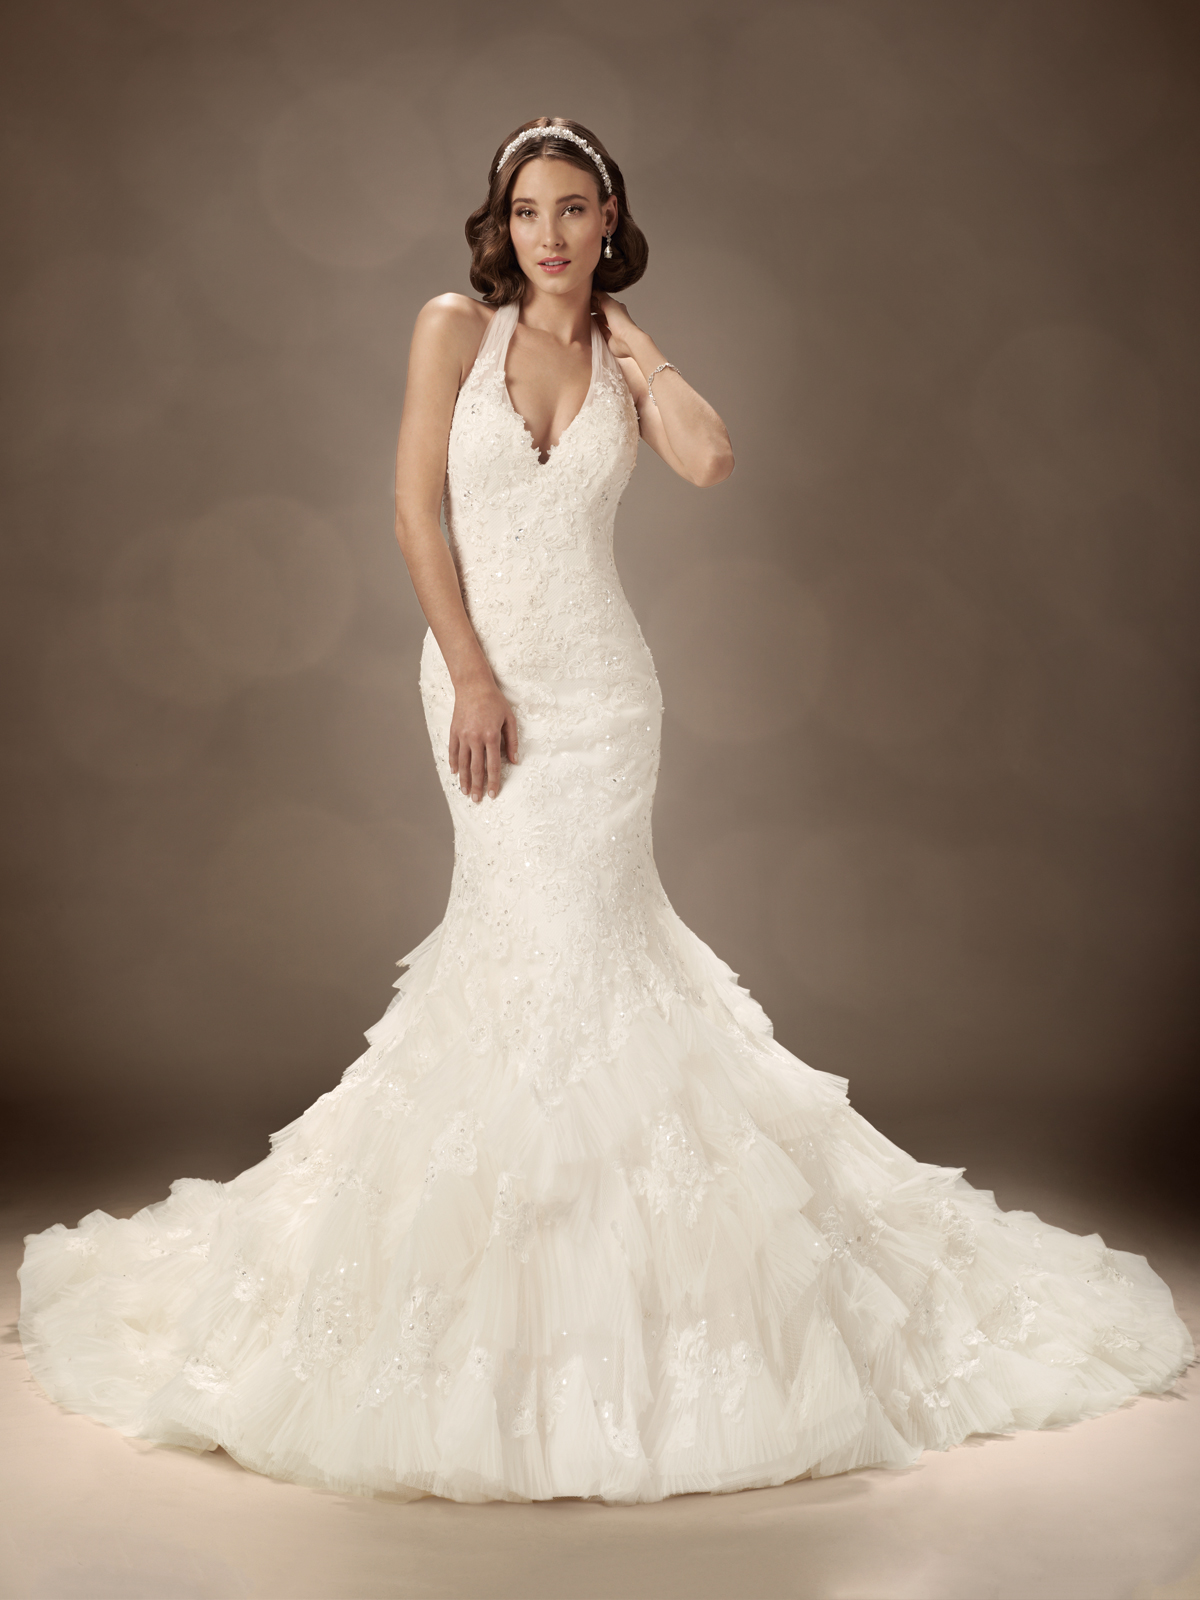 Halter wedding gown for Picture of a wedding dress